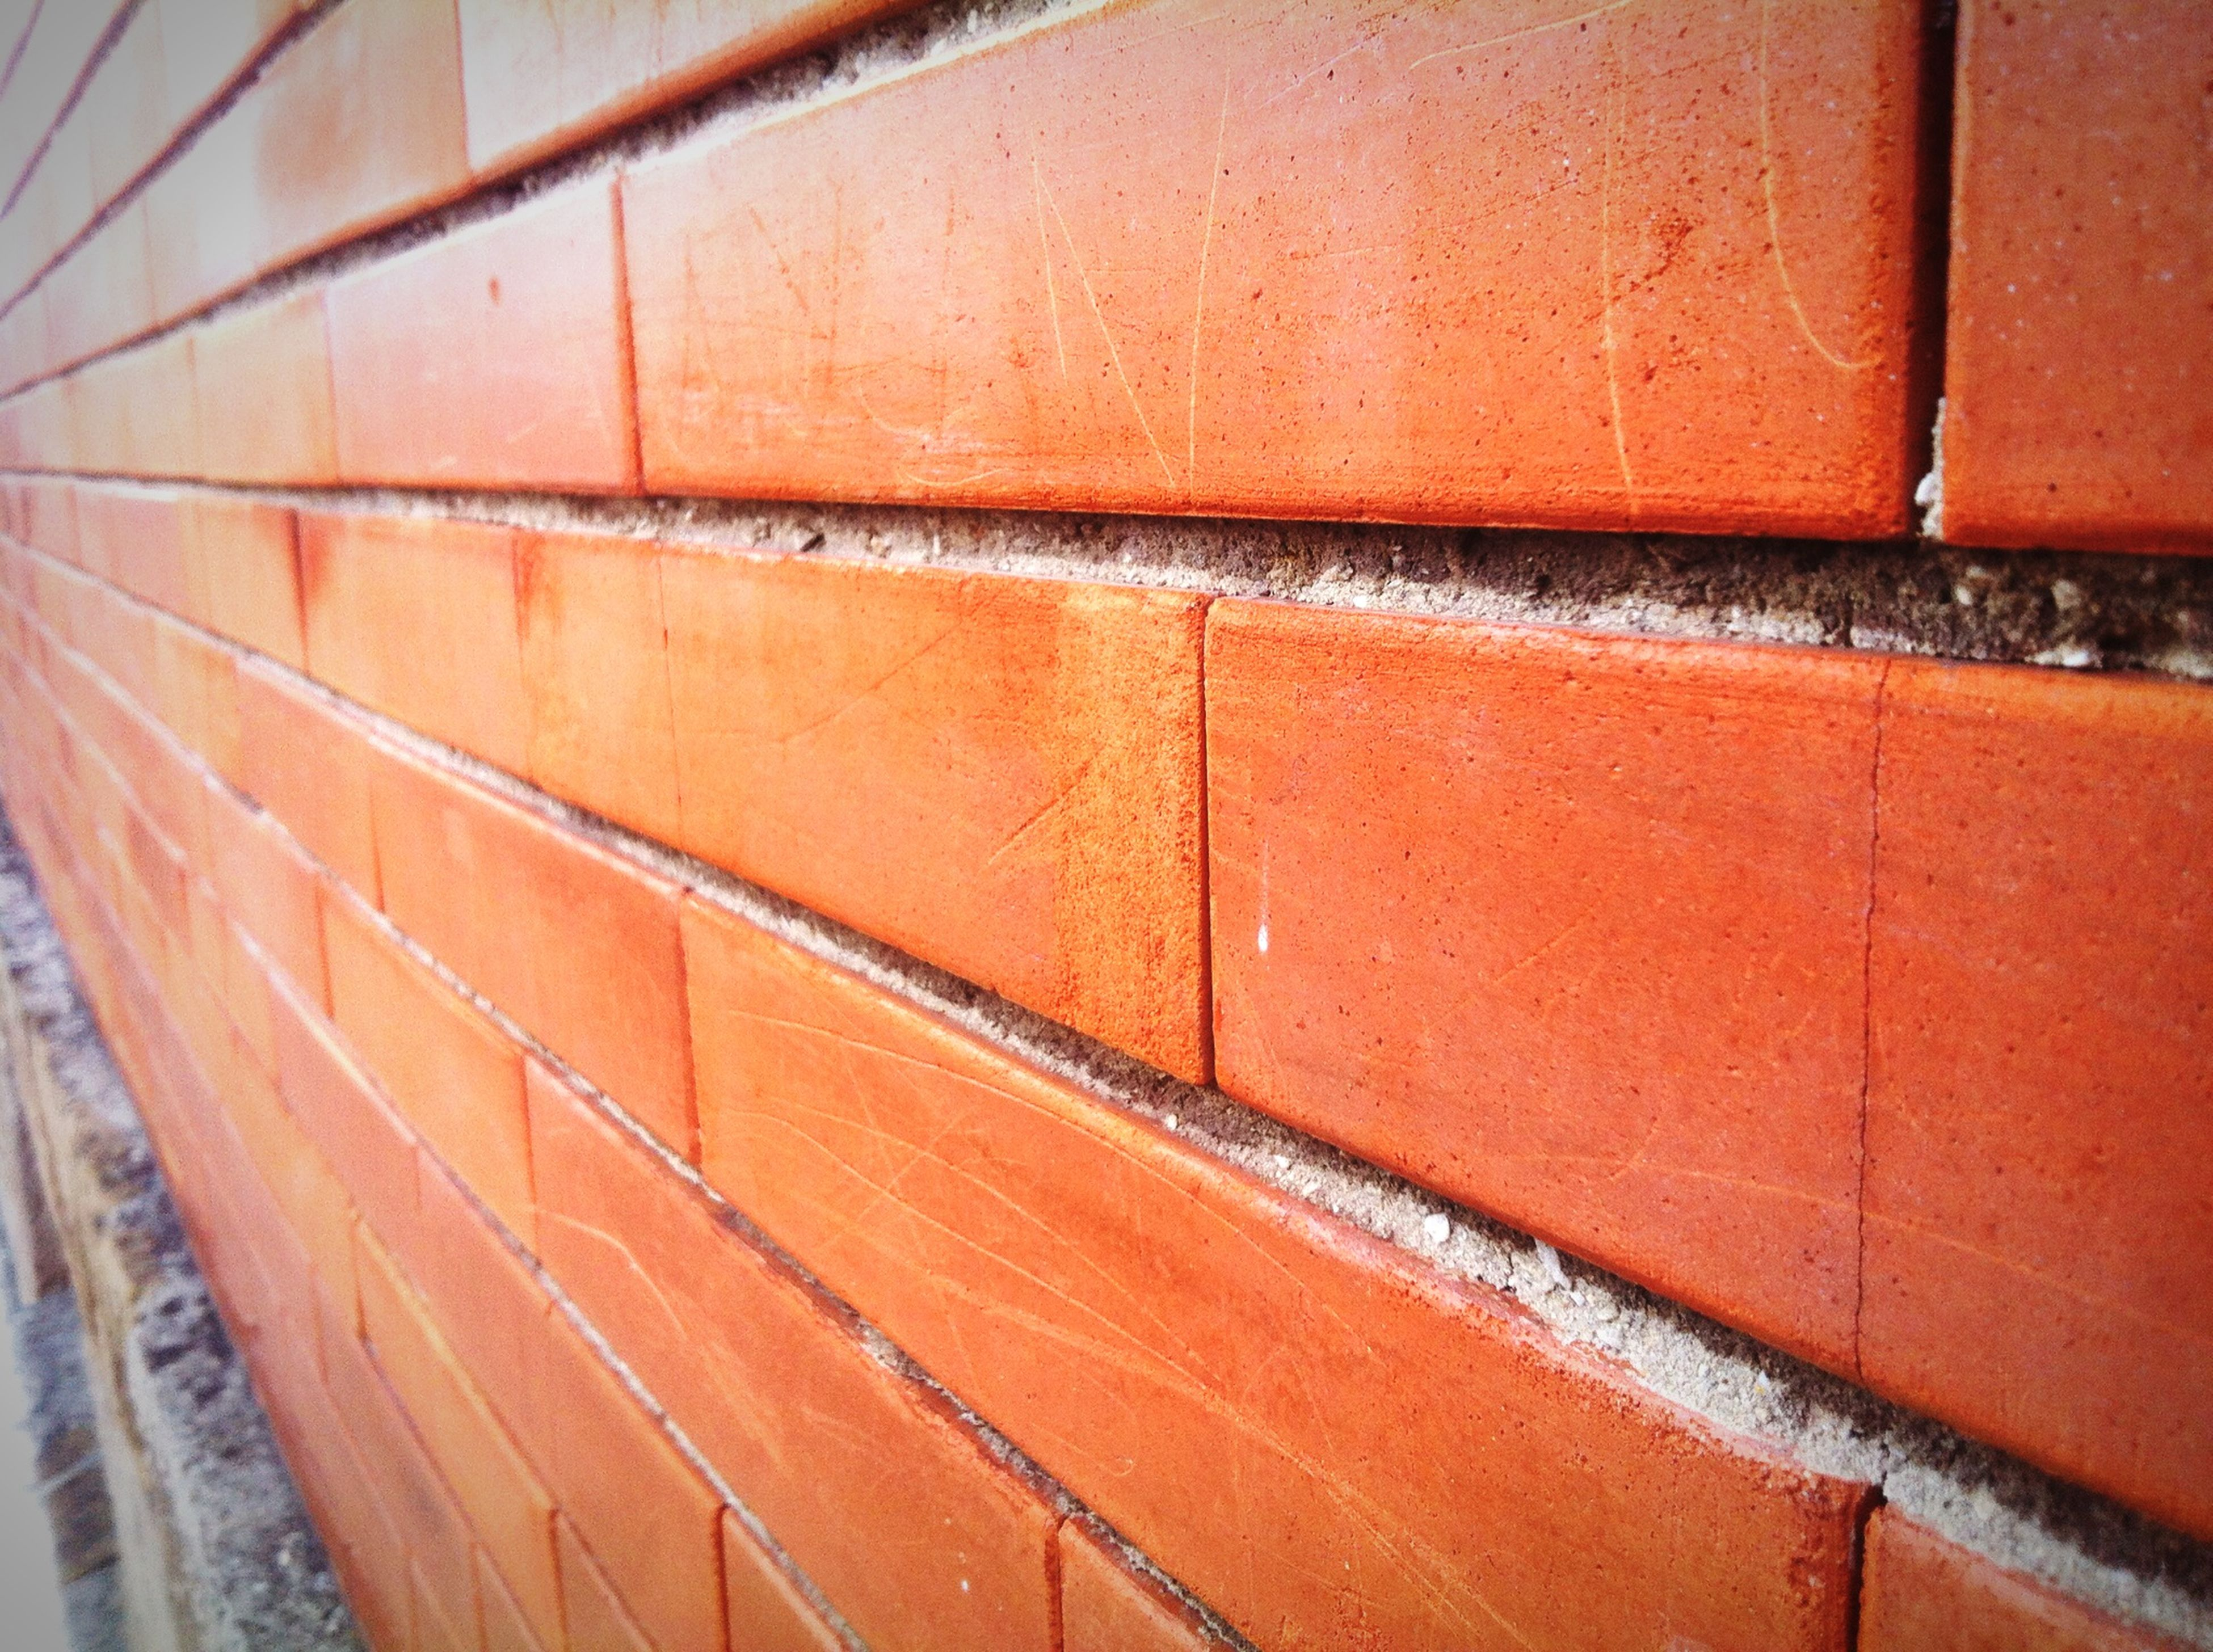 architecture, built structure, full frame, brick wall, building exterior, backgrounds, wall - building feature, pattern, close-up, textured, red, wall, no people, day, brick, outdoors, window, detail, repetition, steps